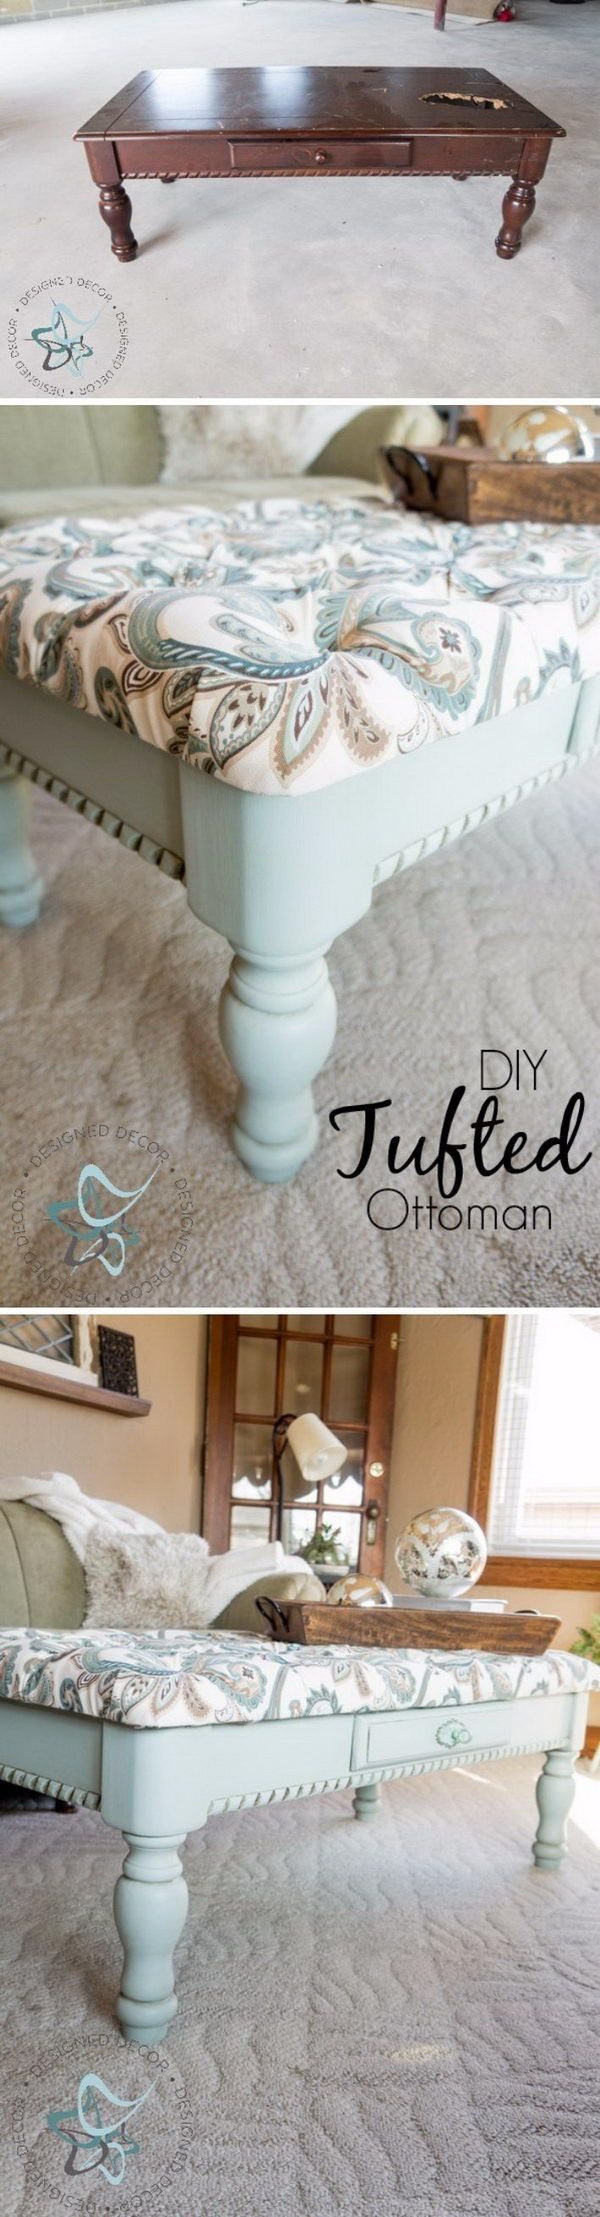 DIY Tufted Coffee Table Bench. | furniture redo | Pinterest ...